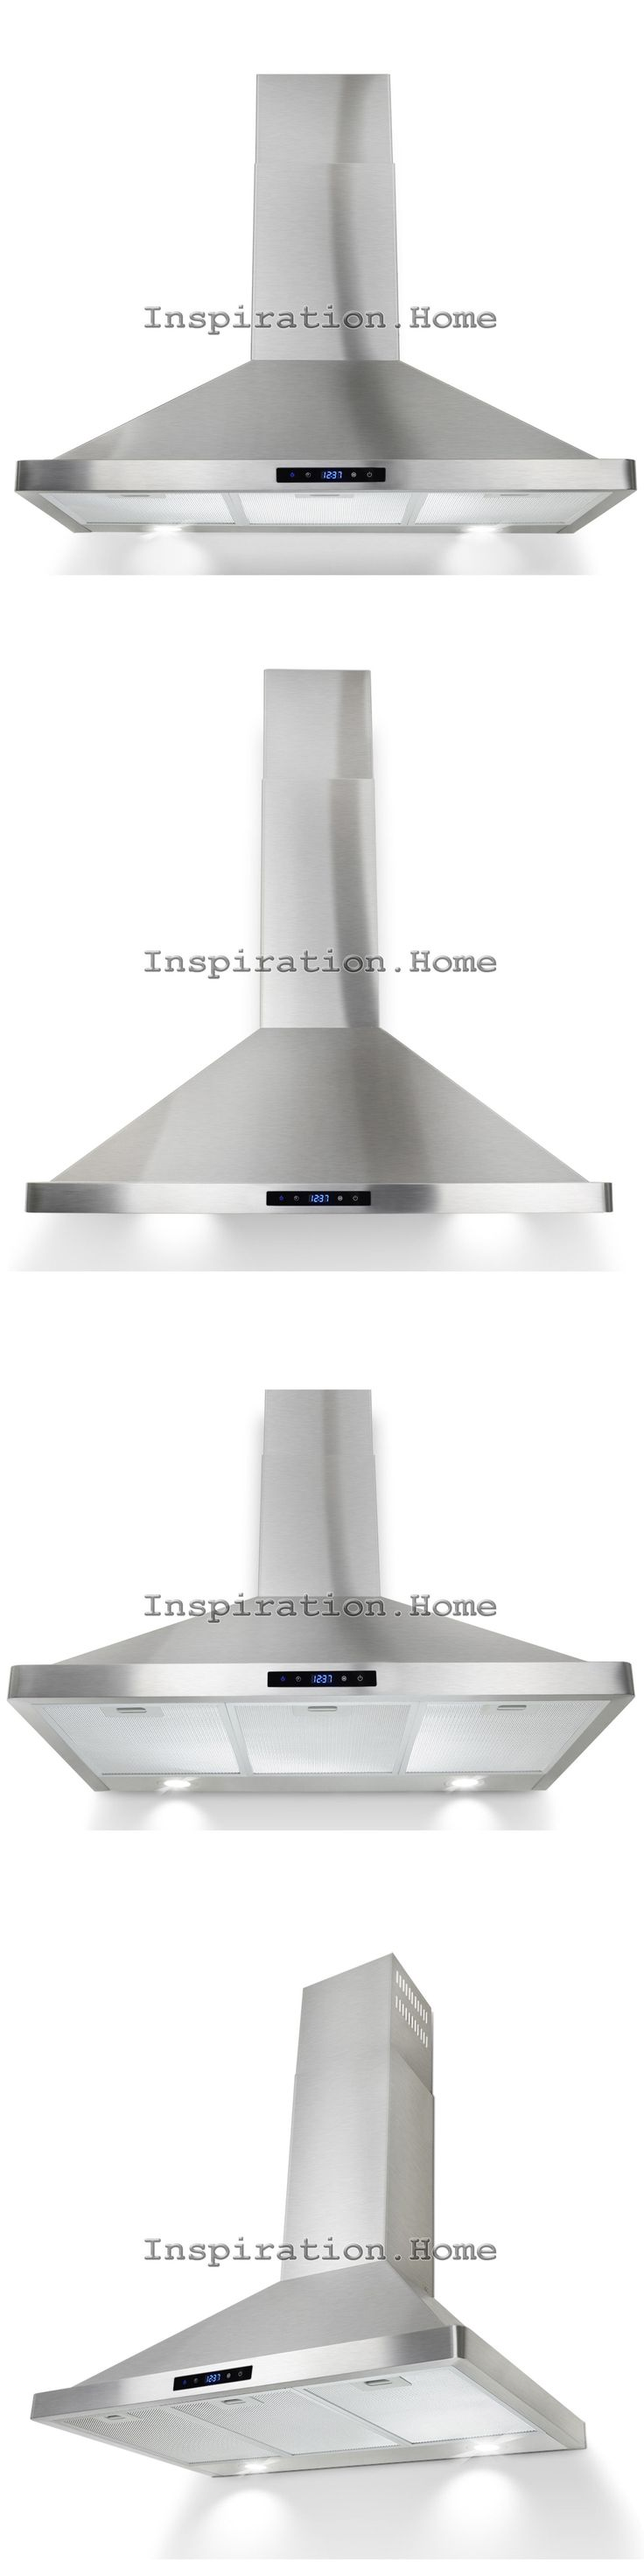 Major Appliances: 36 Wall Mount Stainless Steel Range Hood Touch Panel Modern Stove Vent Kitchen -> BUY IT NOW ONLY: $149.99 on eBay!